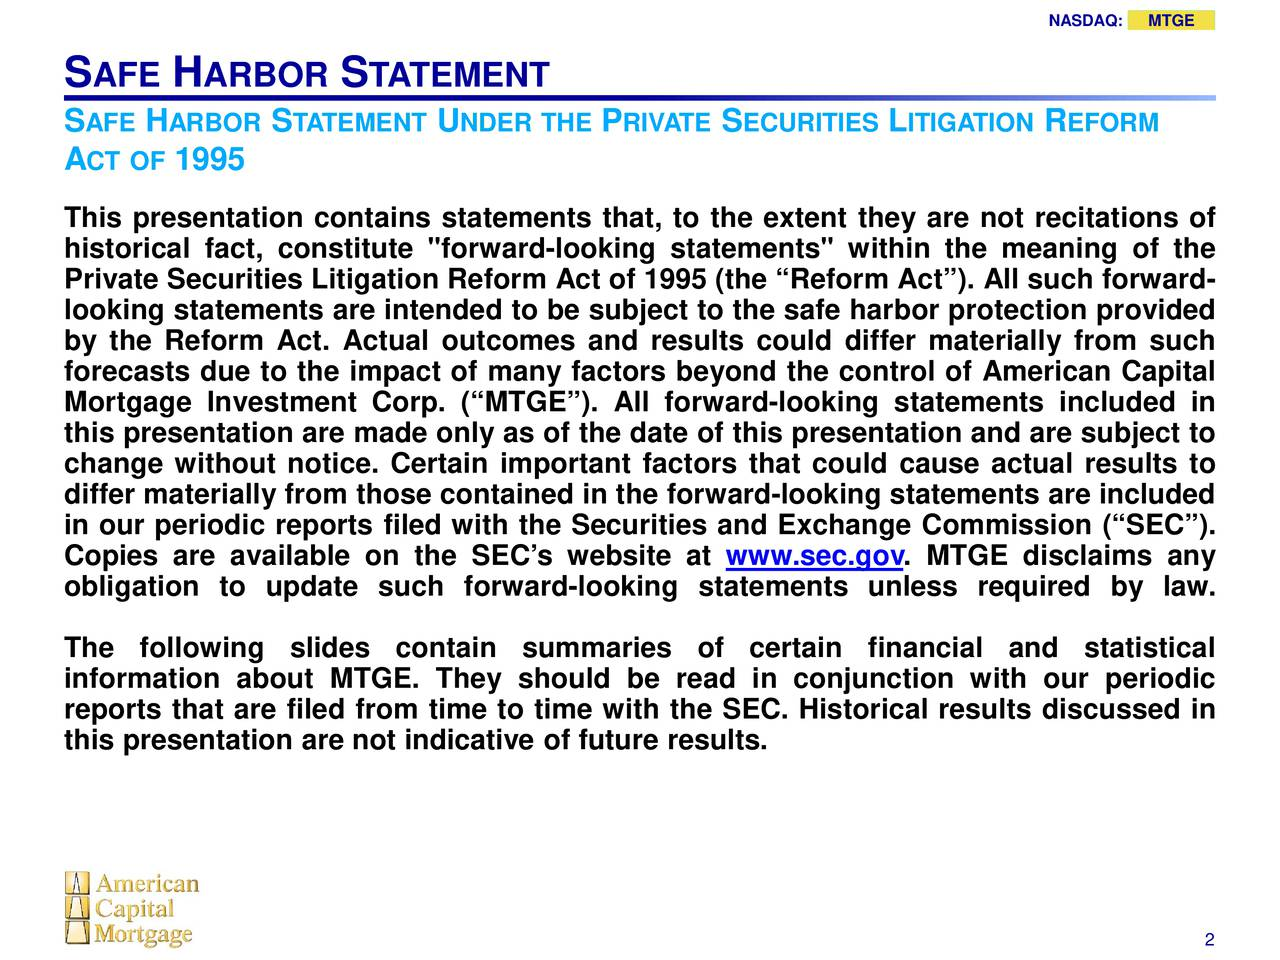 """S AFE H ARBOR S TATEMENT SAFE HARBOR S TATEMENTUNDER THE PRIVATESECURITIESLITIGATIOR EFORM ACT OF 1995 This presentation contains statements that, to the extent they are not recitations of historical fact, constitute """"forward-looking statements"""" within the meaning of the Private Securities Litigation Reform Act of 1995 (the Reform Act). All such forward- looking statements are intended to be subject to the safe harbor protection provided by the Reform Act. Actual outcomes and results could differ materially from such forecasts due to the impact of many factors beyond the control of American Capital Mortgage Investment Corp. (MTGE). All forward-looking statements included in this presentation are made only as of the date of this presentation and are subject to change without notice. Certain important factors that could cause actual results to differ materially from those contained in the forward-looking statements are included in our periodic reports filed with the Securities and Exchange Commission (SEC). Copies are available on the SECs website atec.gov. MTGE disclaims any obligation to update such forward-looking statements unless required by law. The following slides contain summaries of certain financial and statistical information about MTGE. They should be read in conjunction with our periodic reports that are filed from time to time with the SEC. Historical results discussed in this presentation are not indicative of future results. 2"""